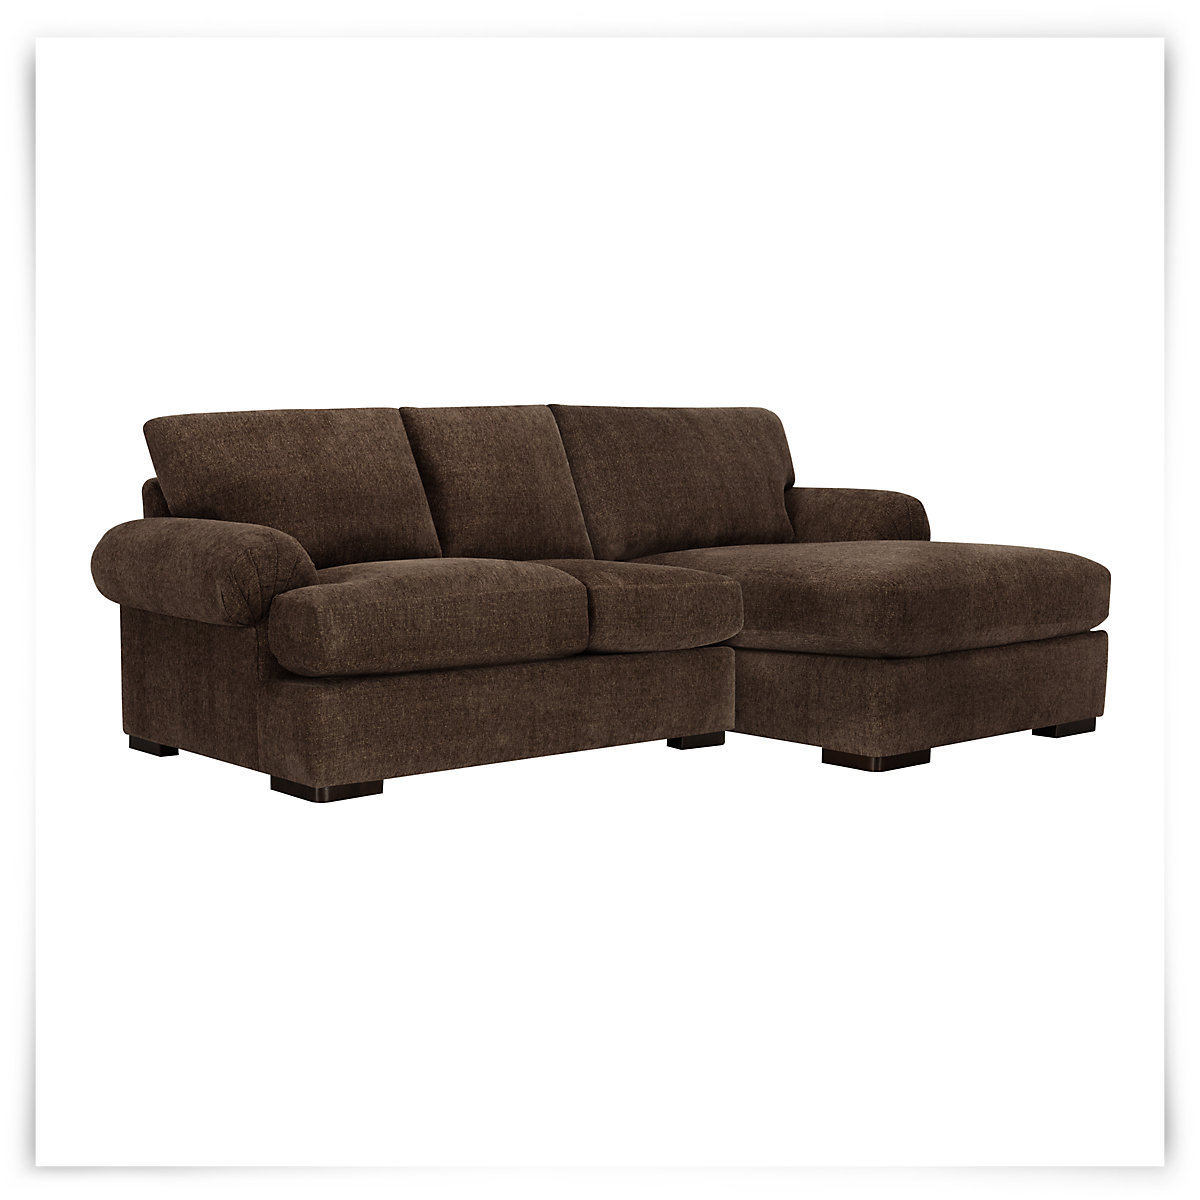 City furniture belair dk brown microfiber right chaise for Brown microfiber sectional with chaise